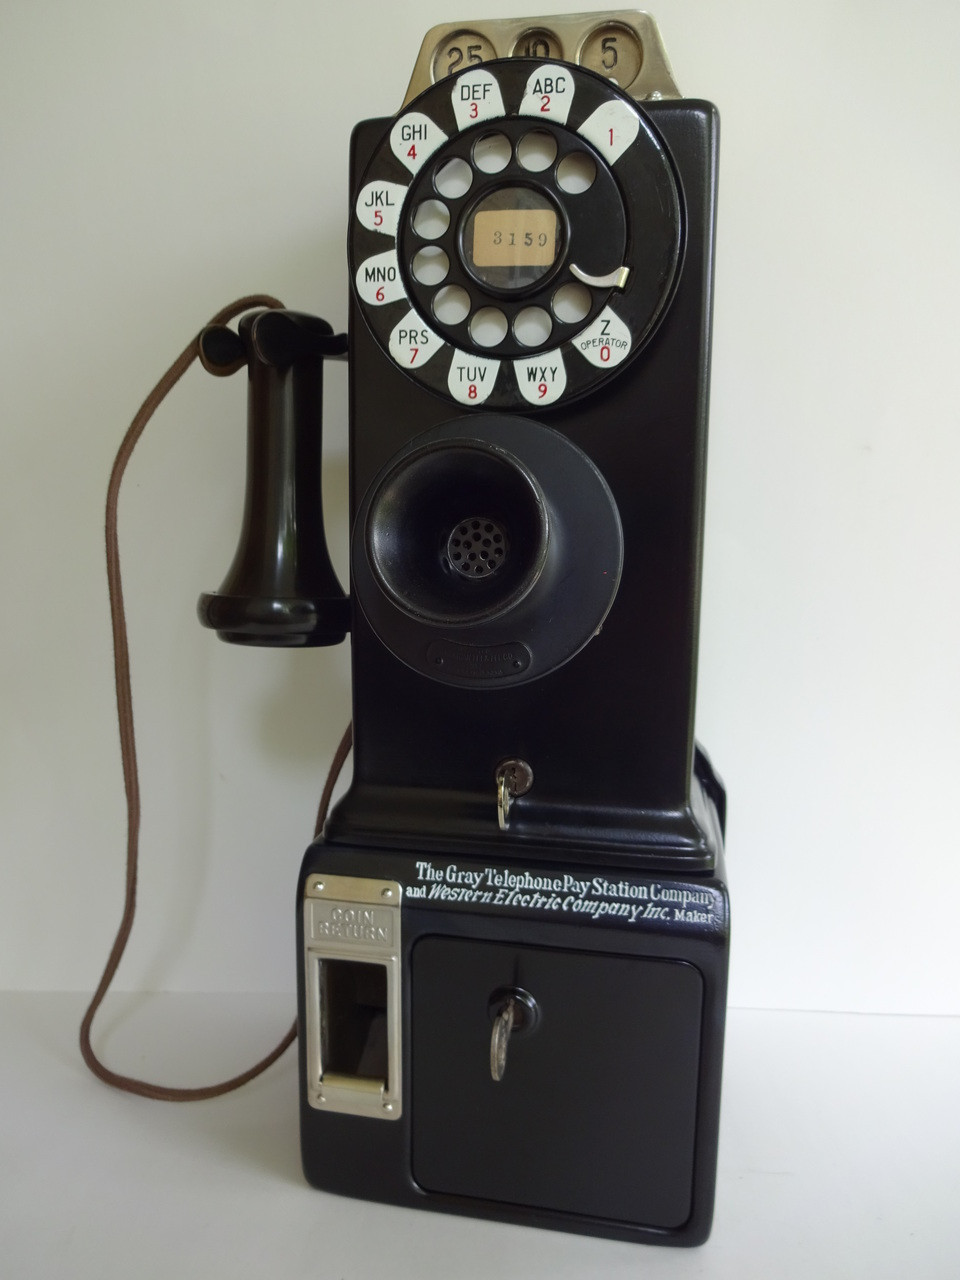 Gray Western 50g Payphone Original 3 Slot Payphone From